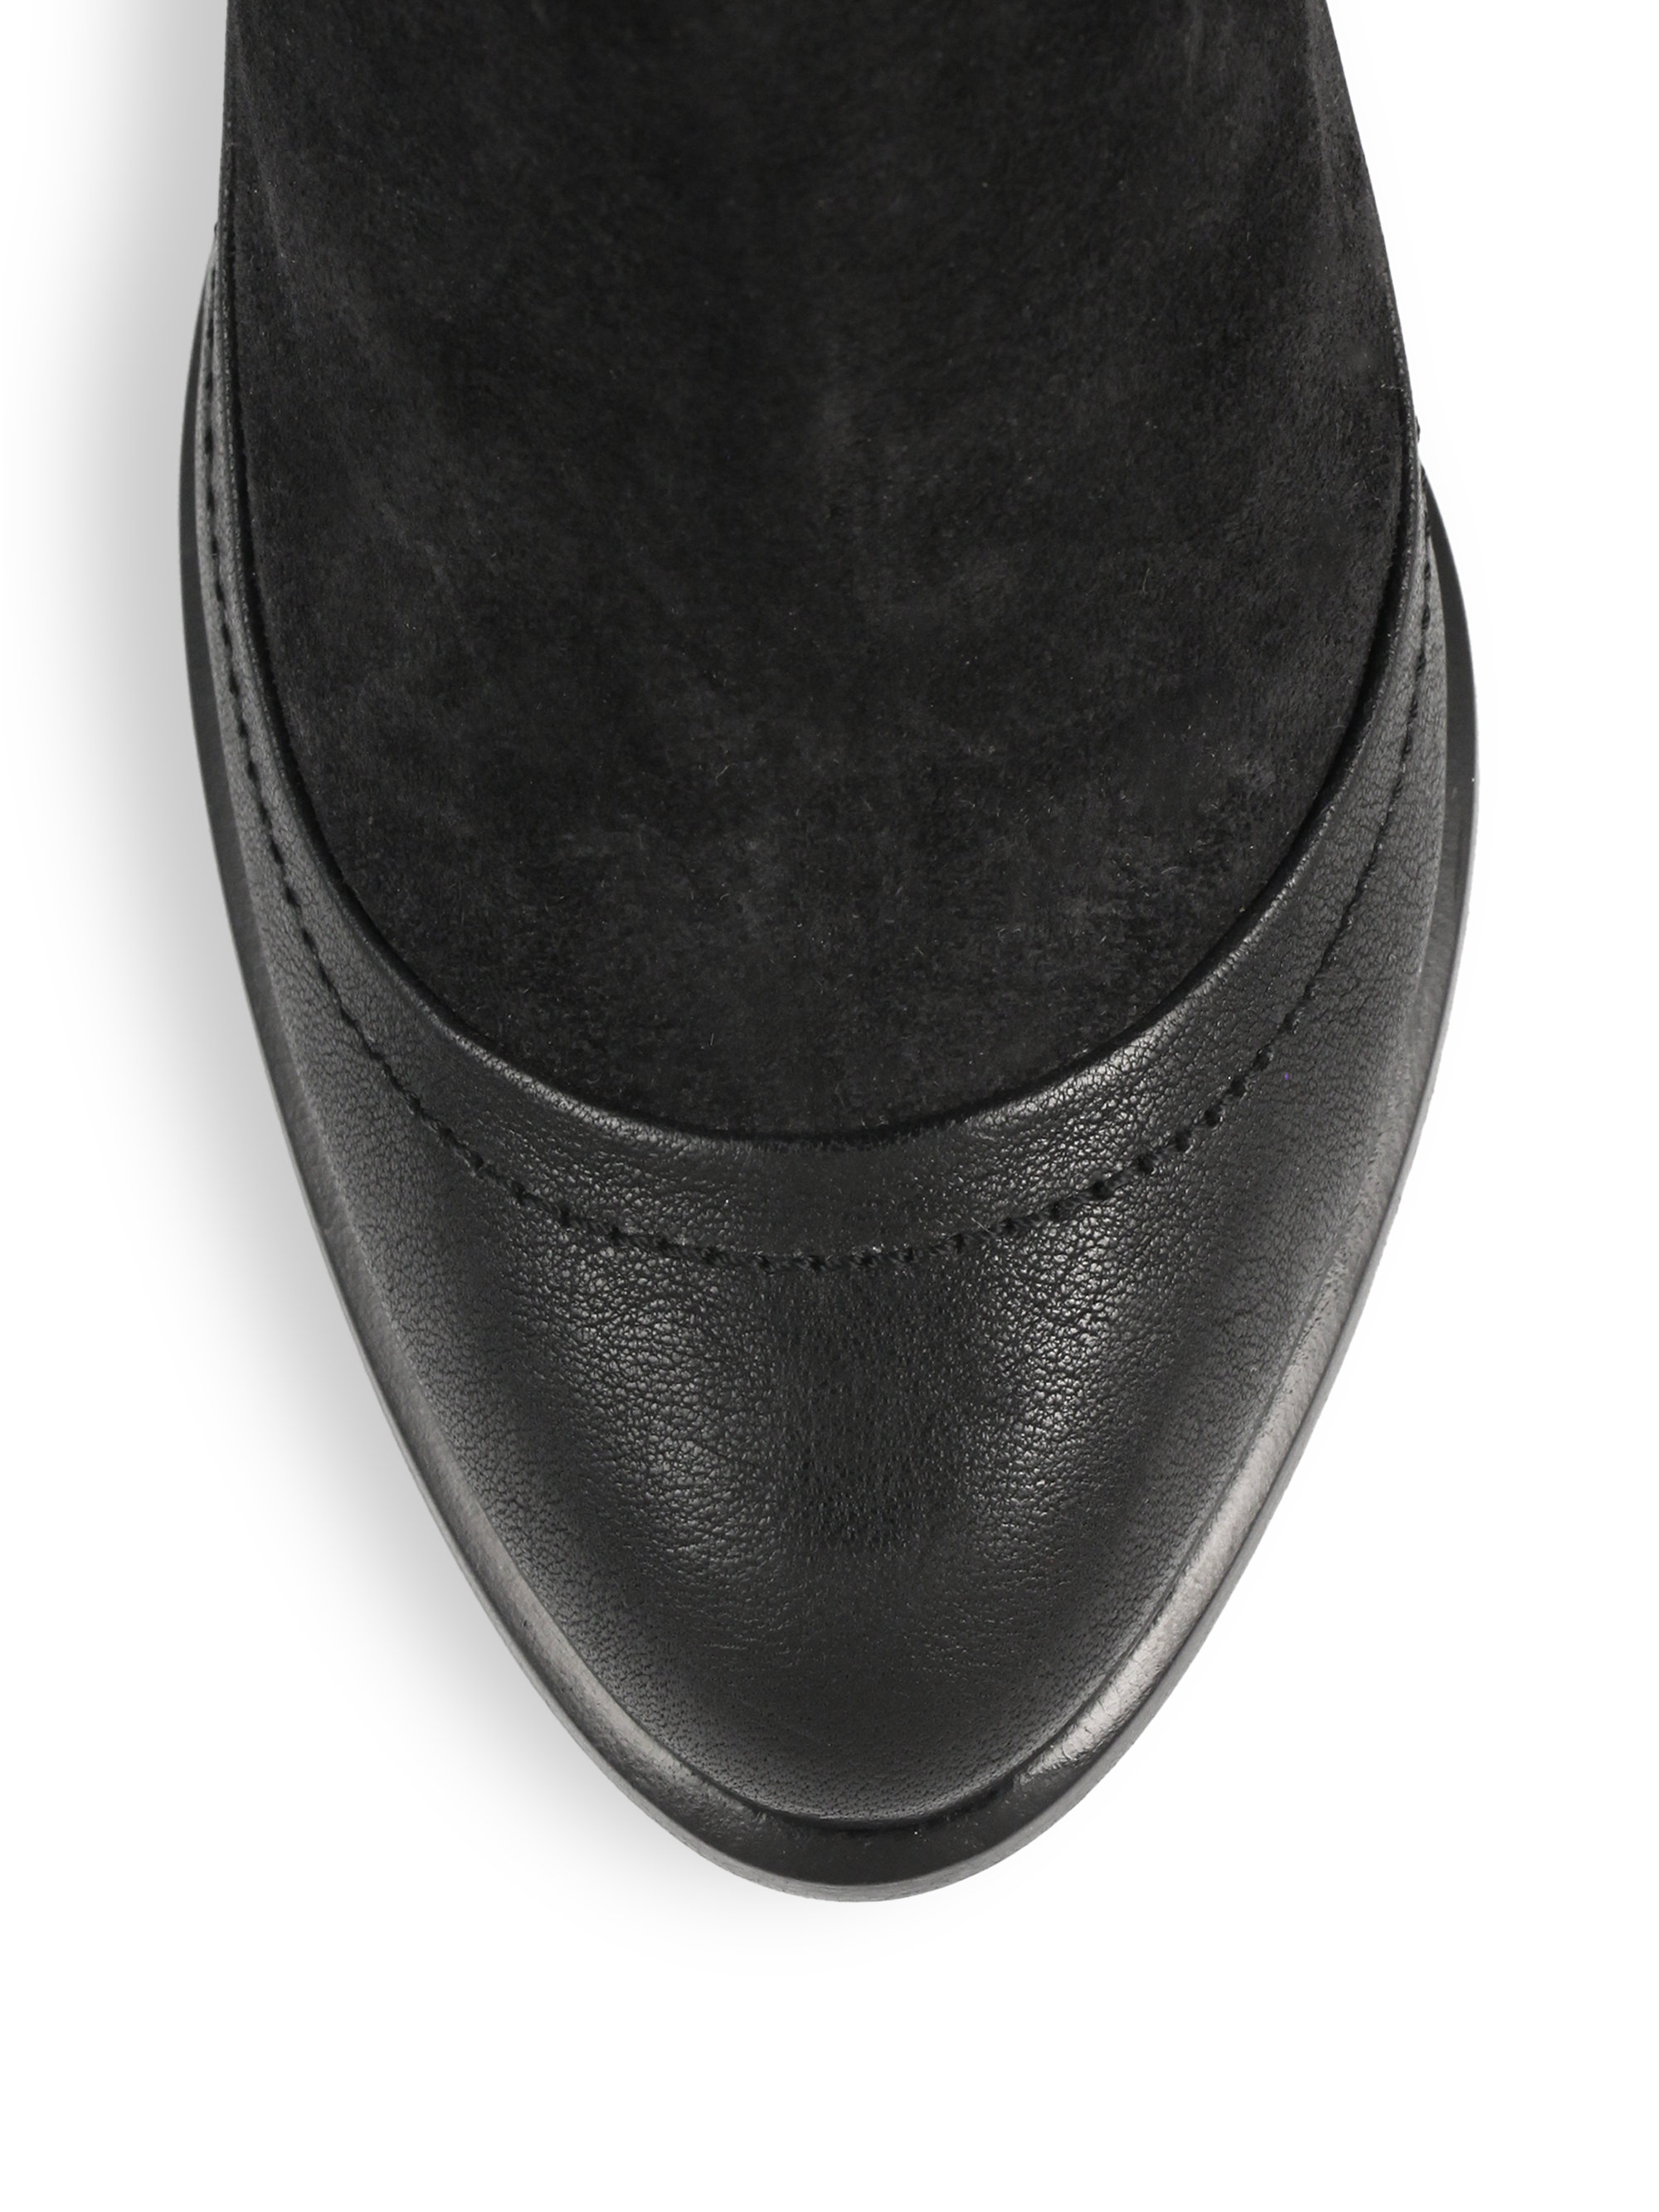 Rag & bone Albion Suede & Leather Ankle Boots in Black | Lyst